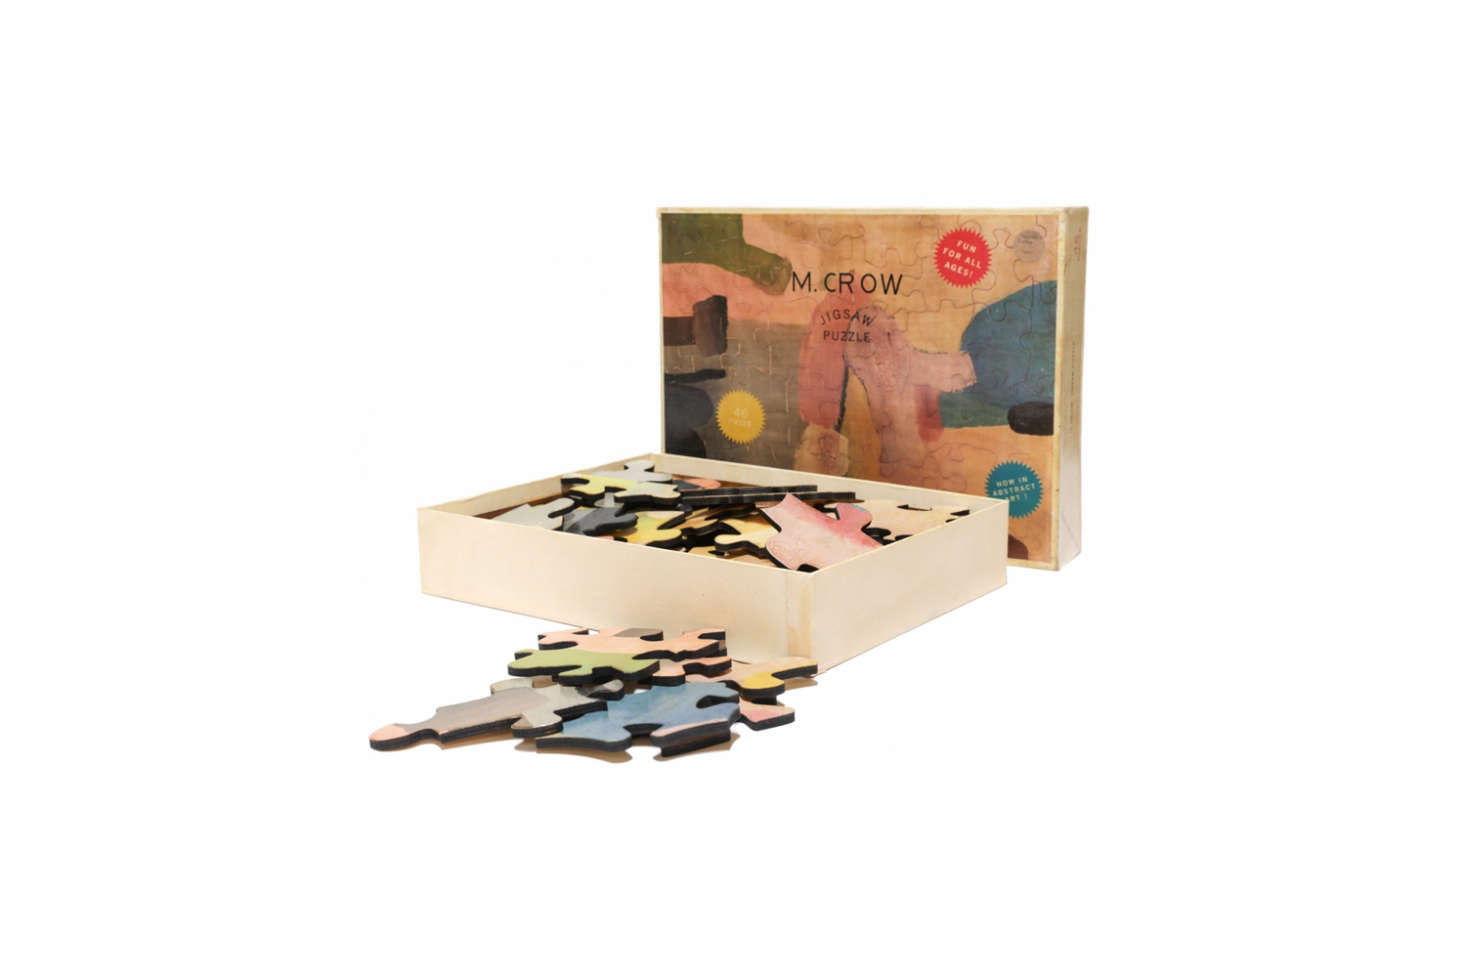 On our wish lists for a while now: Hand-Painted Puzzles by Tyler Hayes, the multitalented creative behind BDDW and M. Crow. The puzzles measure  by  inches and, once completed, can be displayed on an M. Crow puzzle stand (available for $300). The M. Crow Puzzle Catalogue is $0 and includes all 76 hand-painted puzzles and prototypes produced in Tyler Hayes&#8